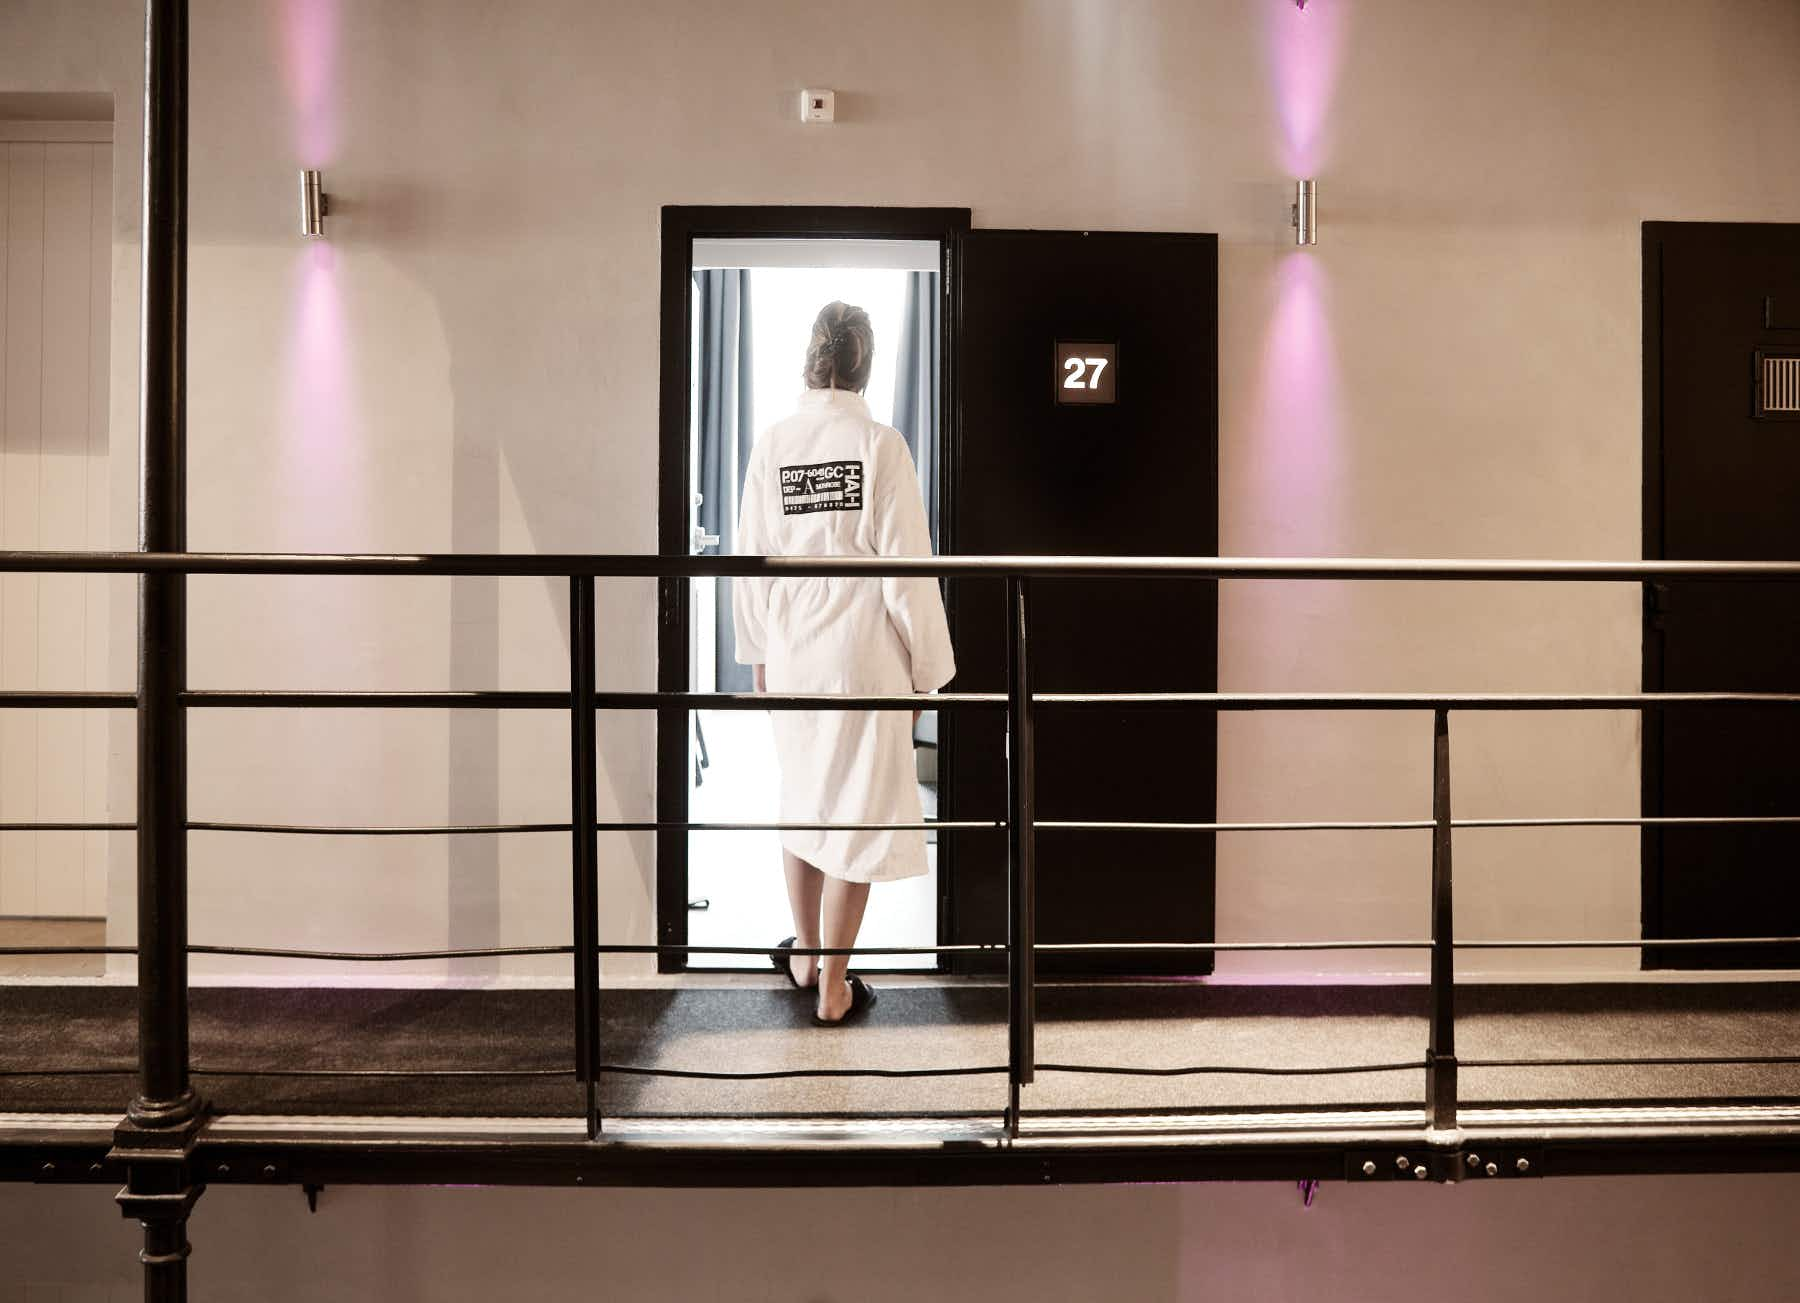 The Netherlands is turning the country's empty prisons into luxury boutique hotels